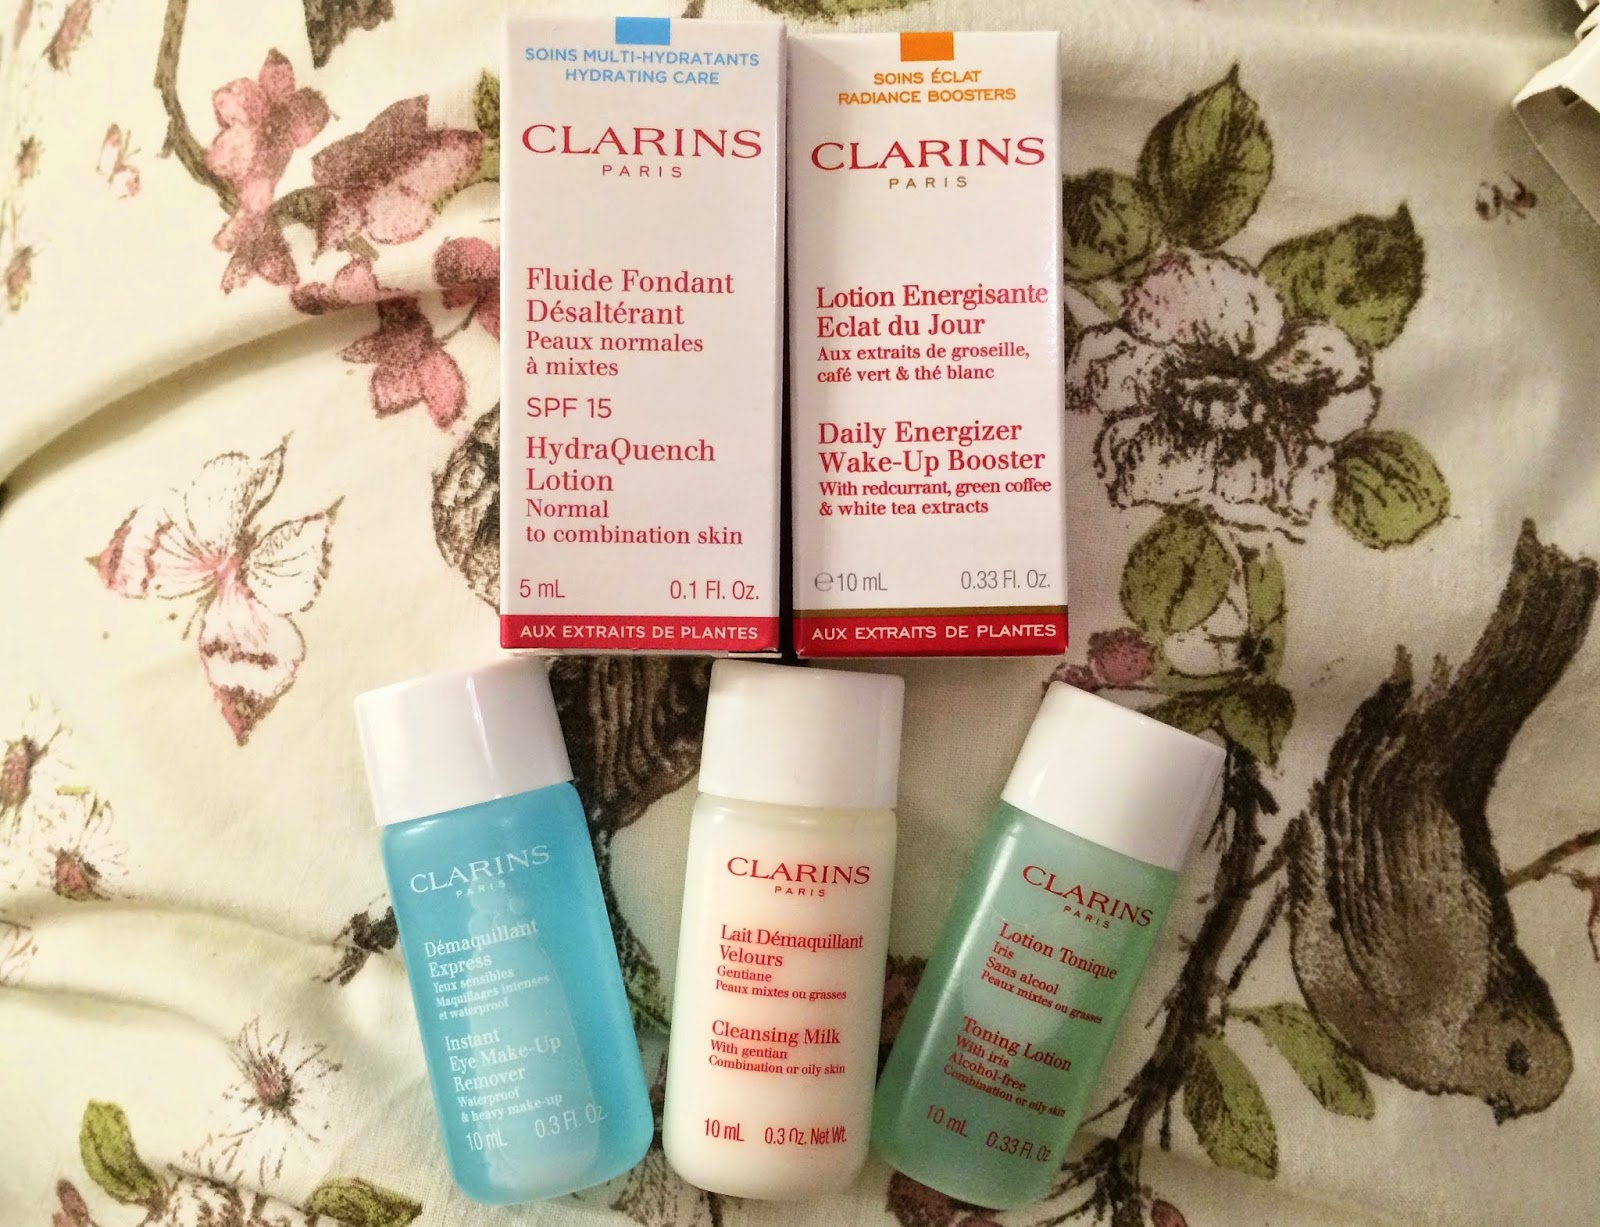 Clarins testers